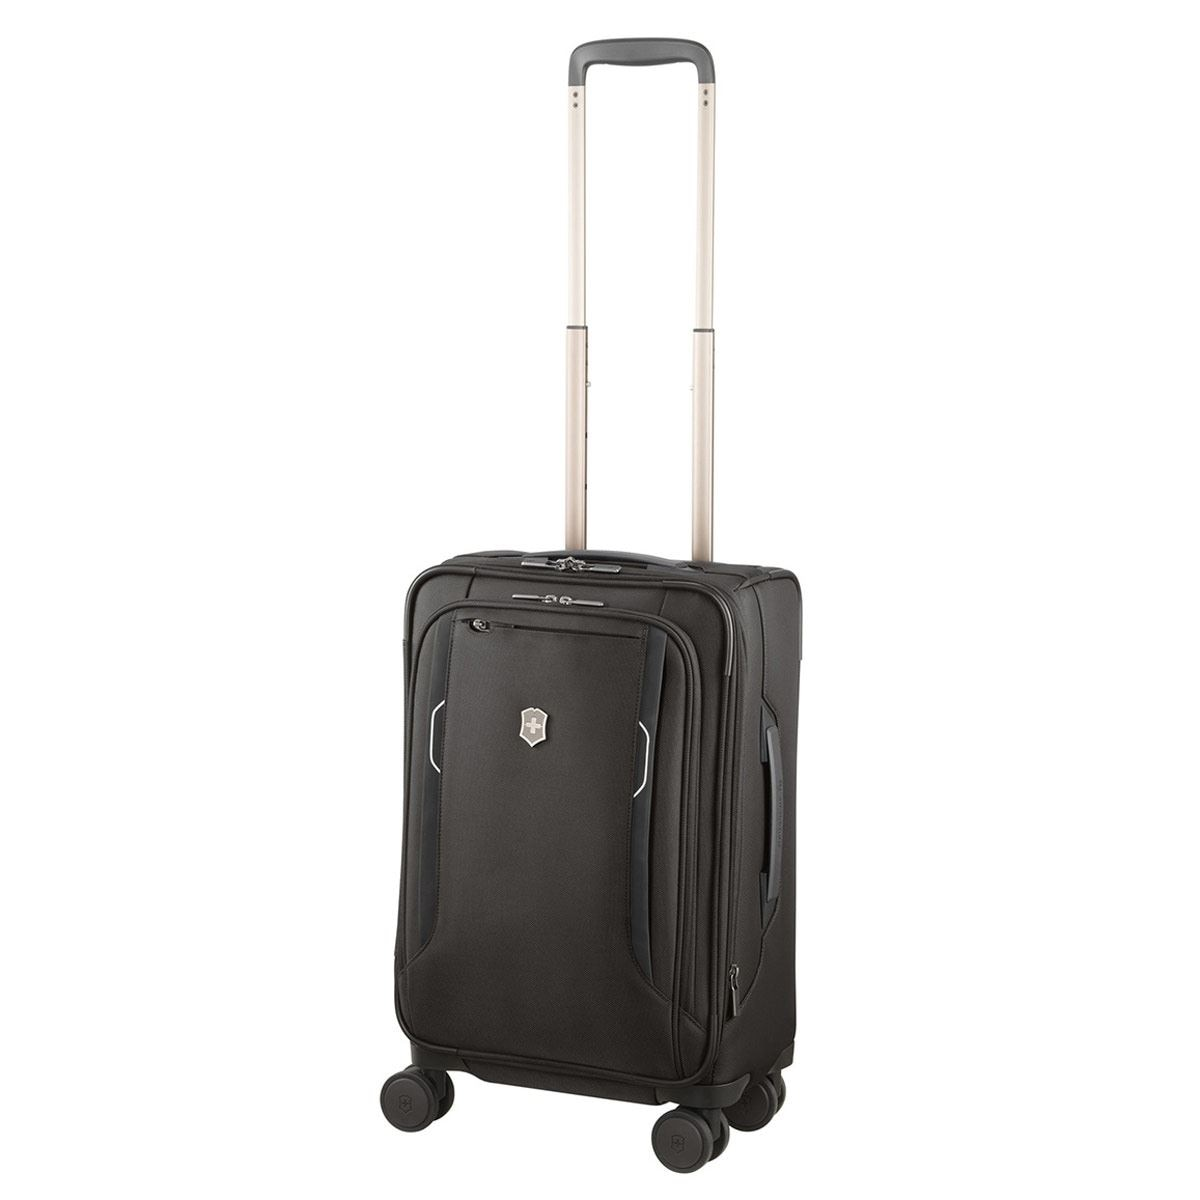 Werks Traveler 6.0, Frequent Flyer Softside Carry-On, Black